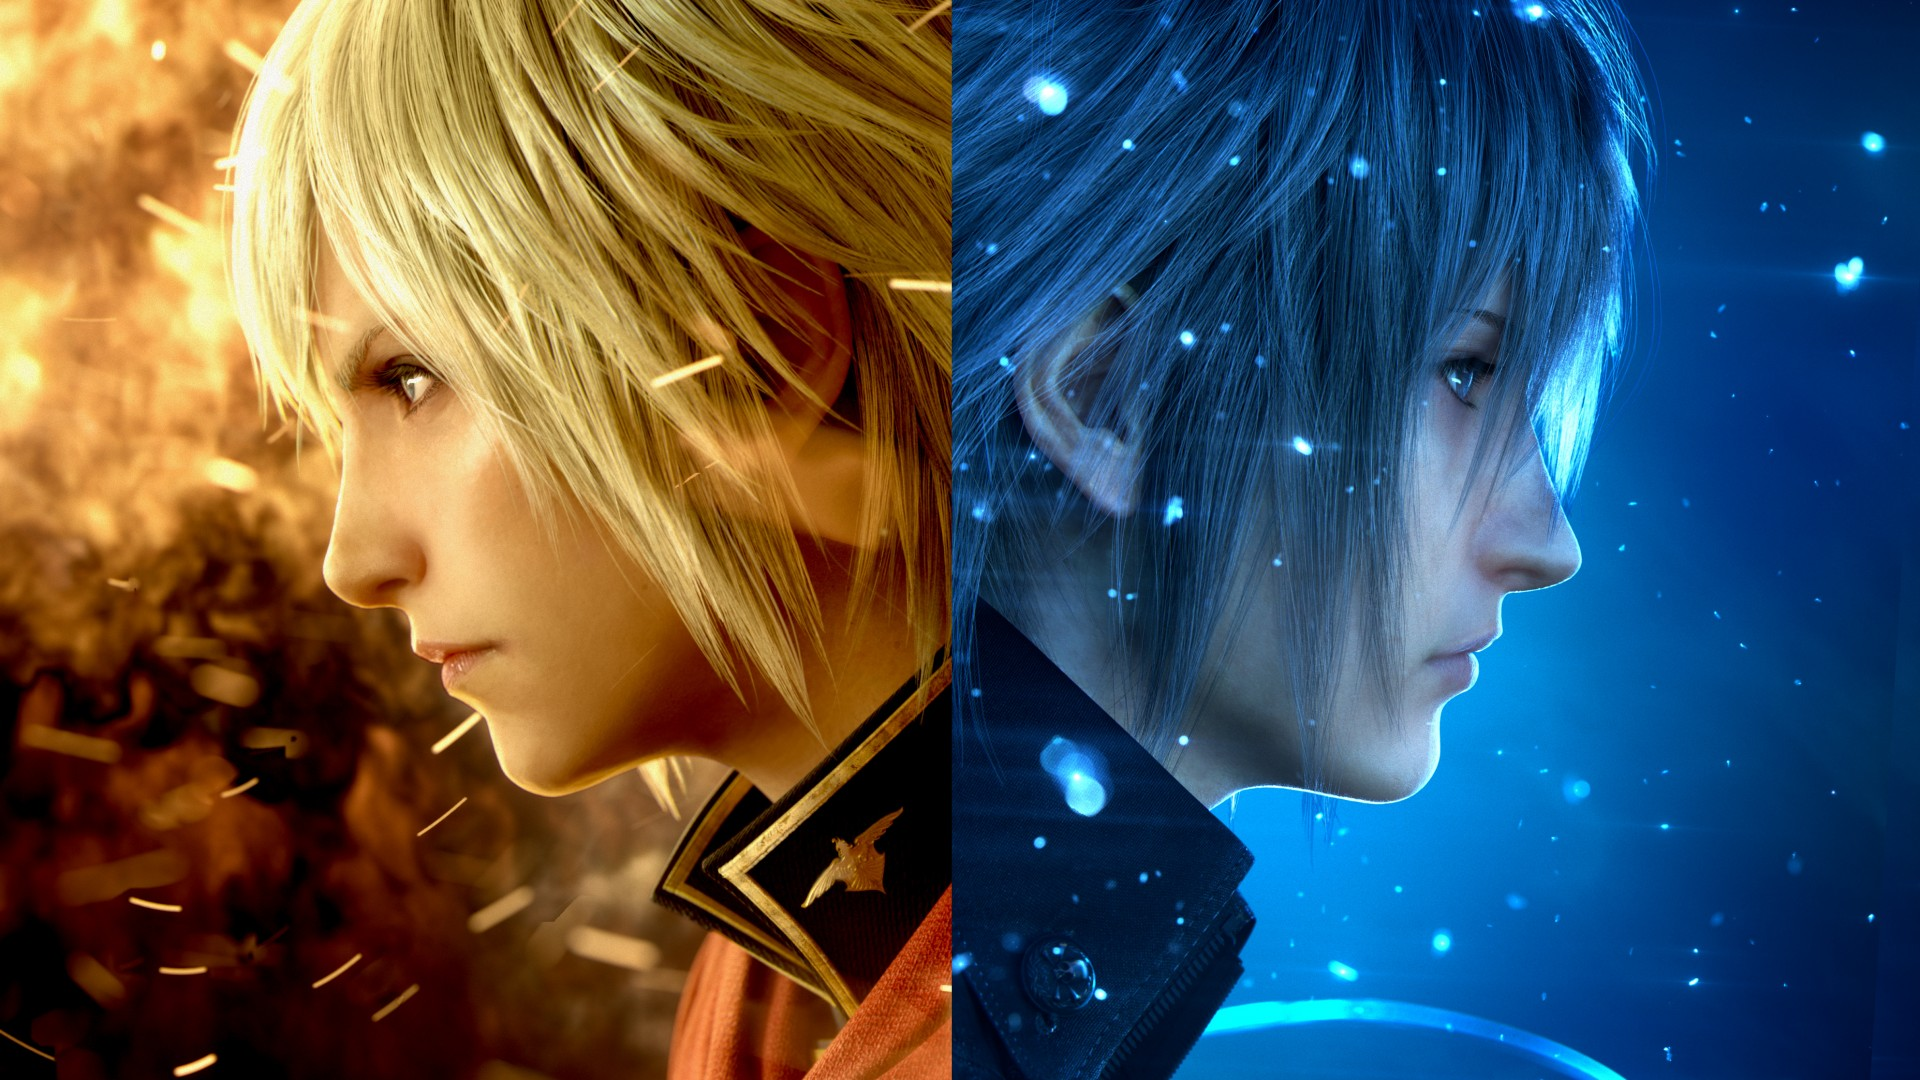 Final Fantasy 15 Noctis Wallpaper Full Hd Is Cool Wallpapers